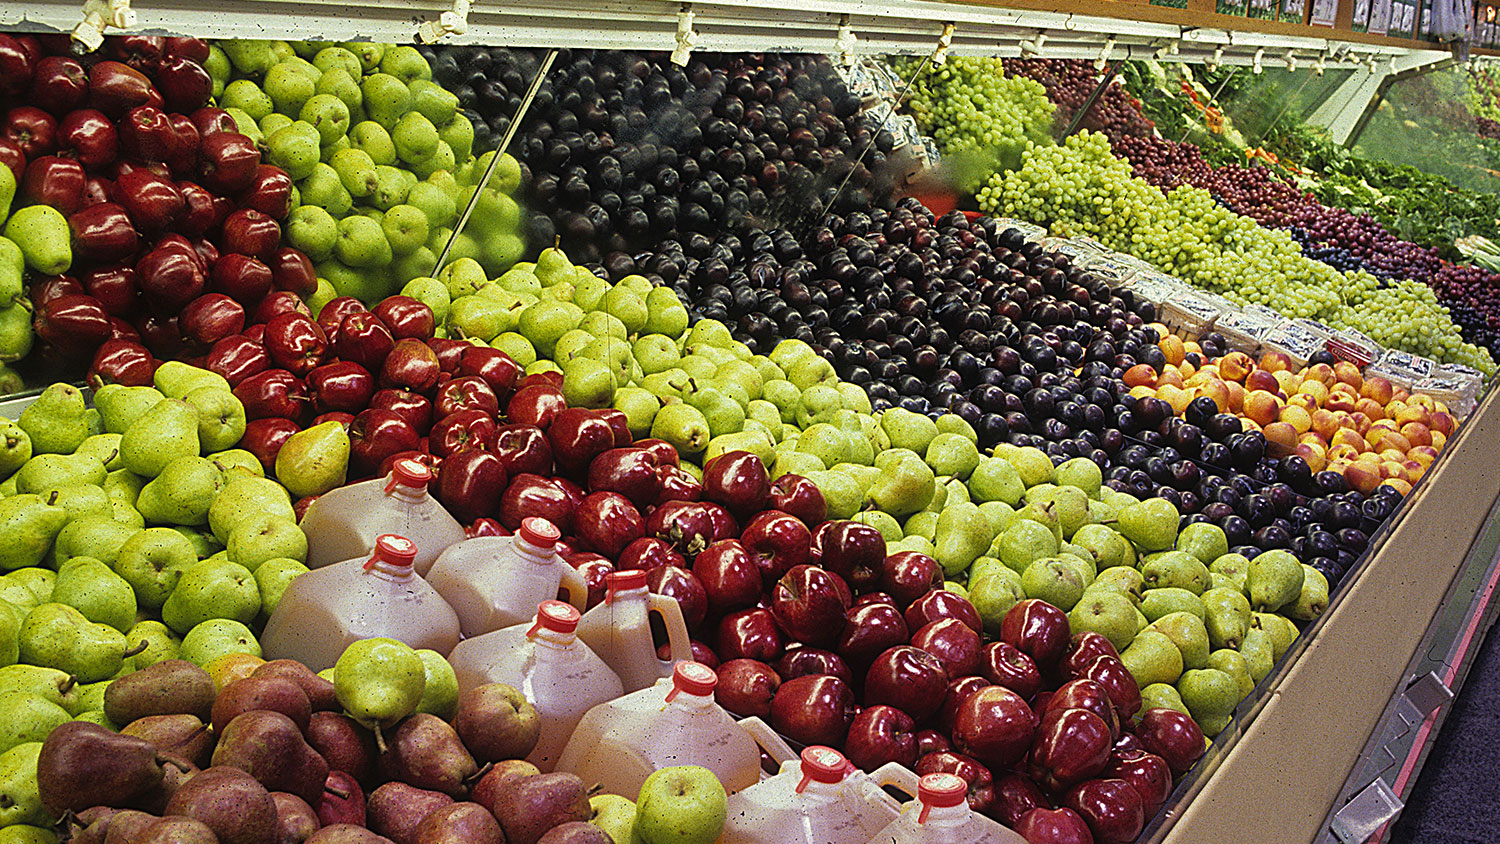 Apples, pears and other produce at a grocery store